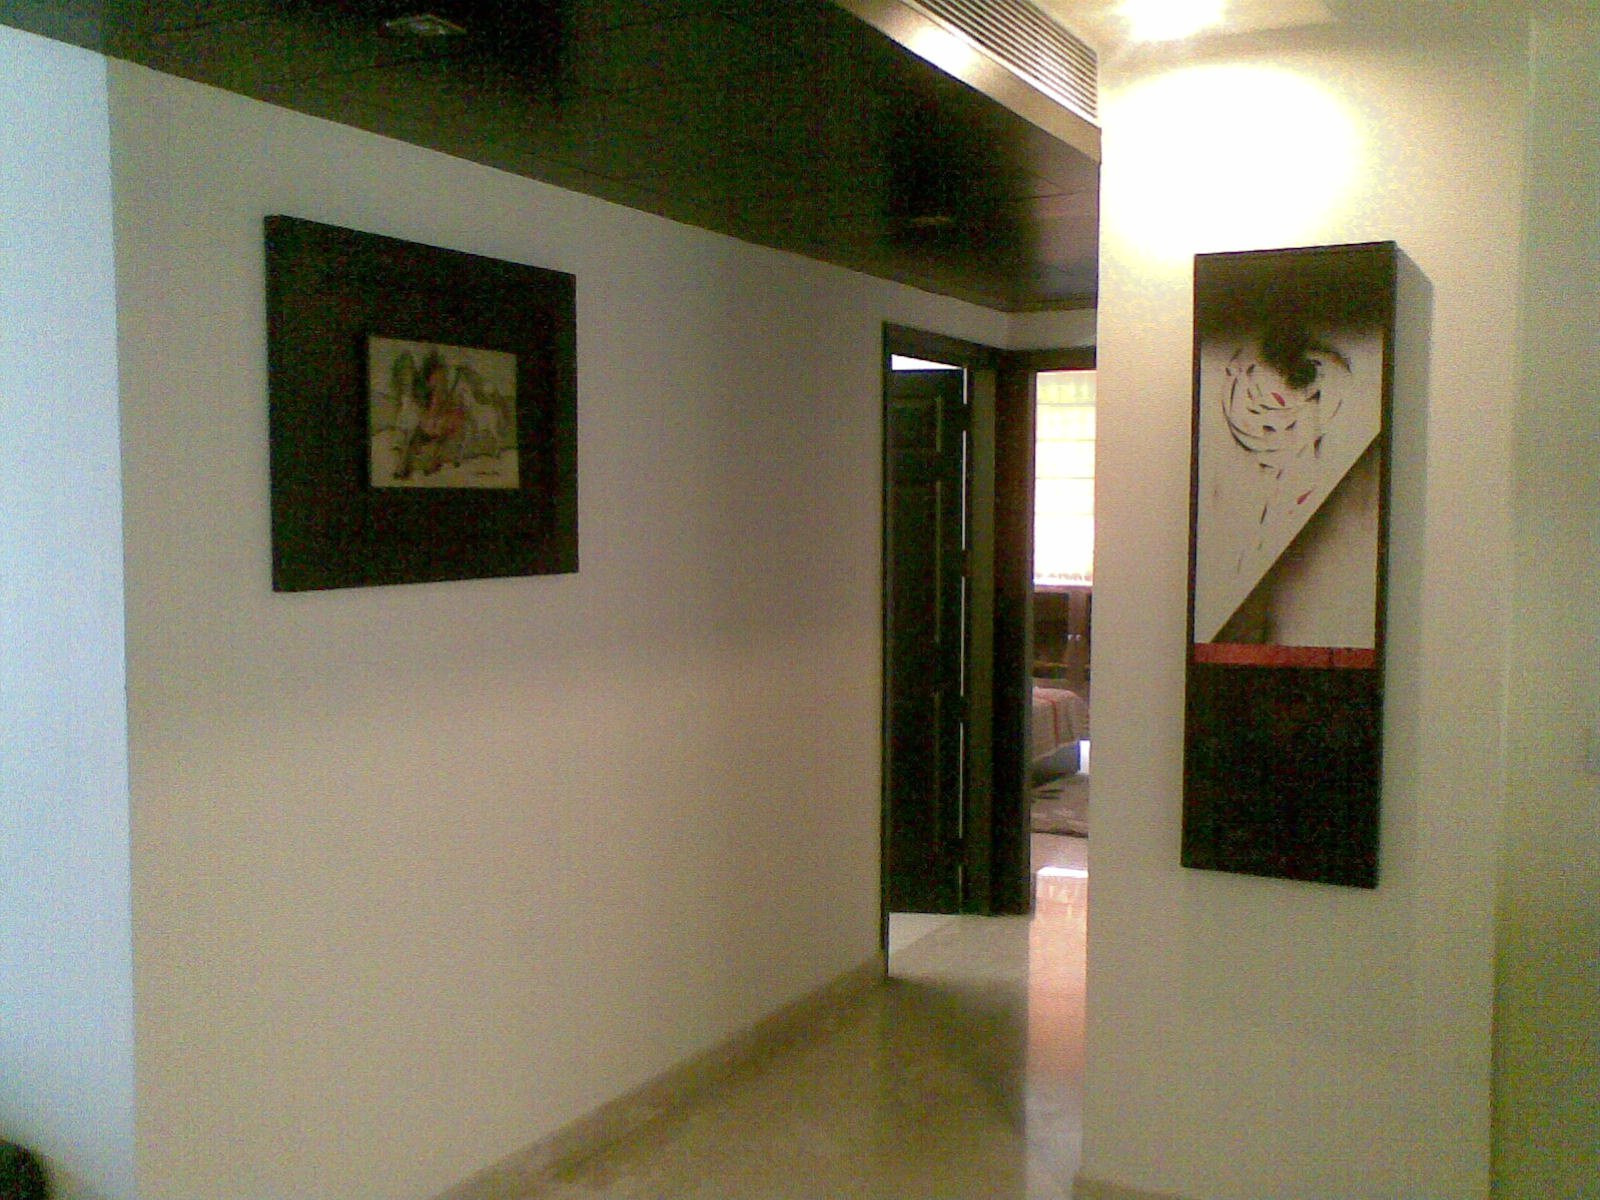 Gallery to rooms